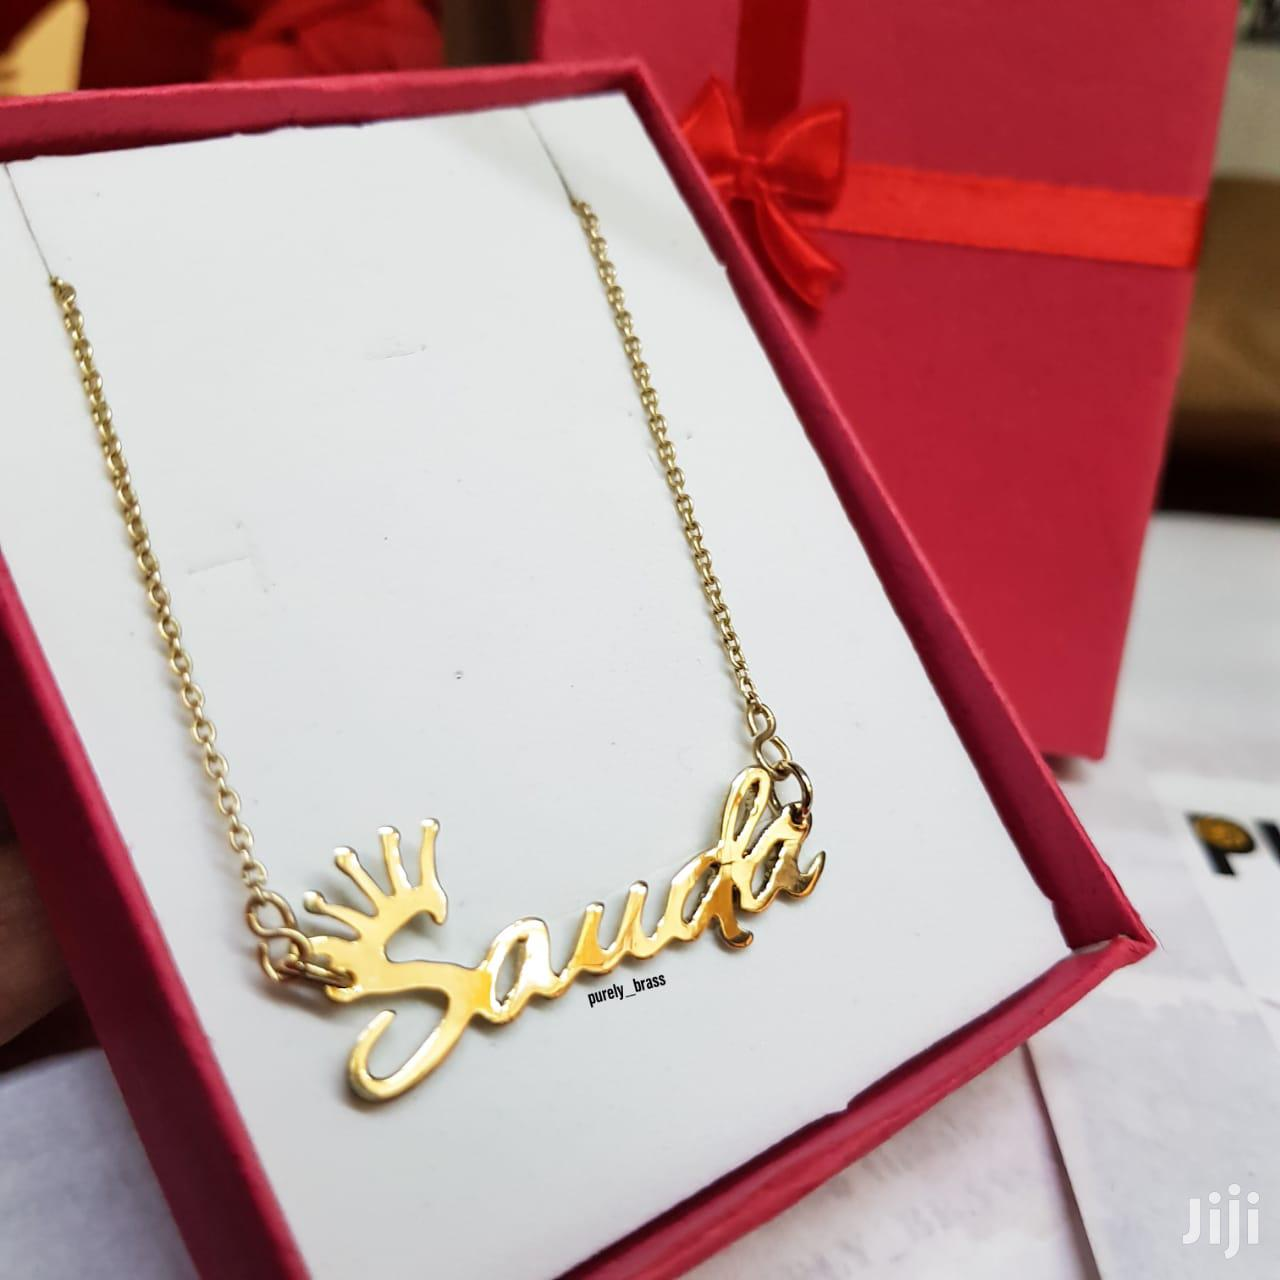 Purely Brass Necklace | Jewelry for sale in Nairobi Central, Nairobi, Kenya